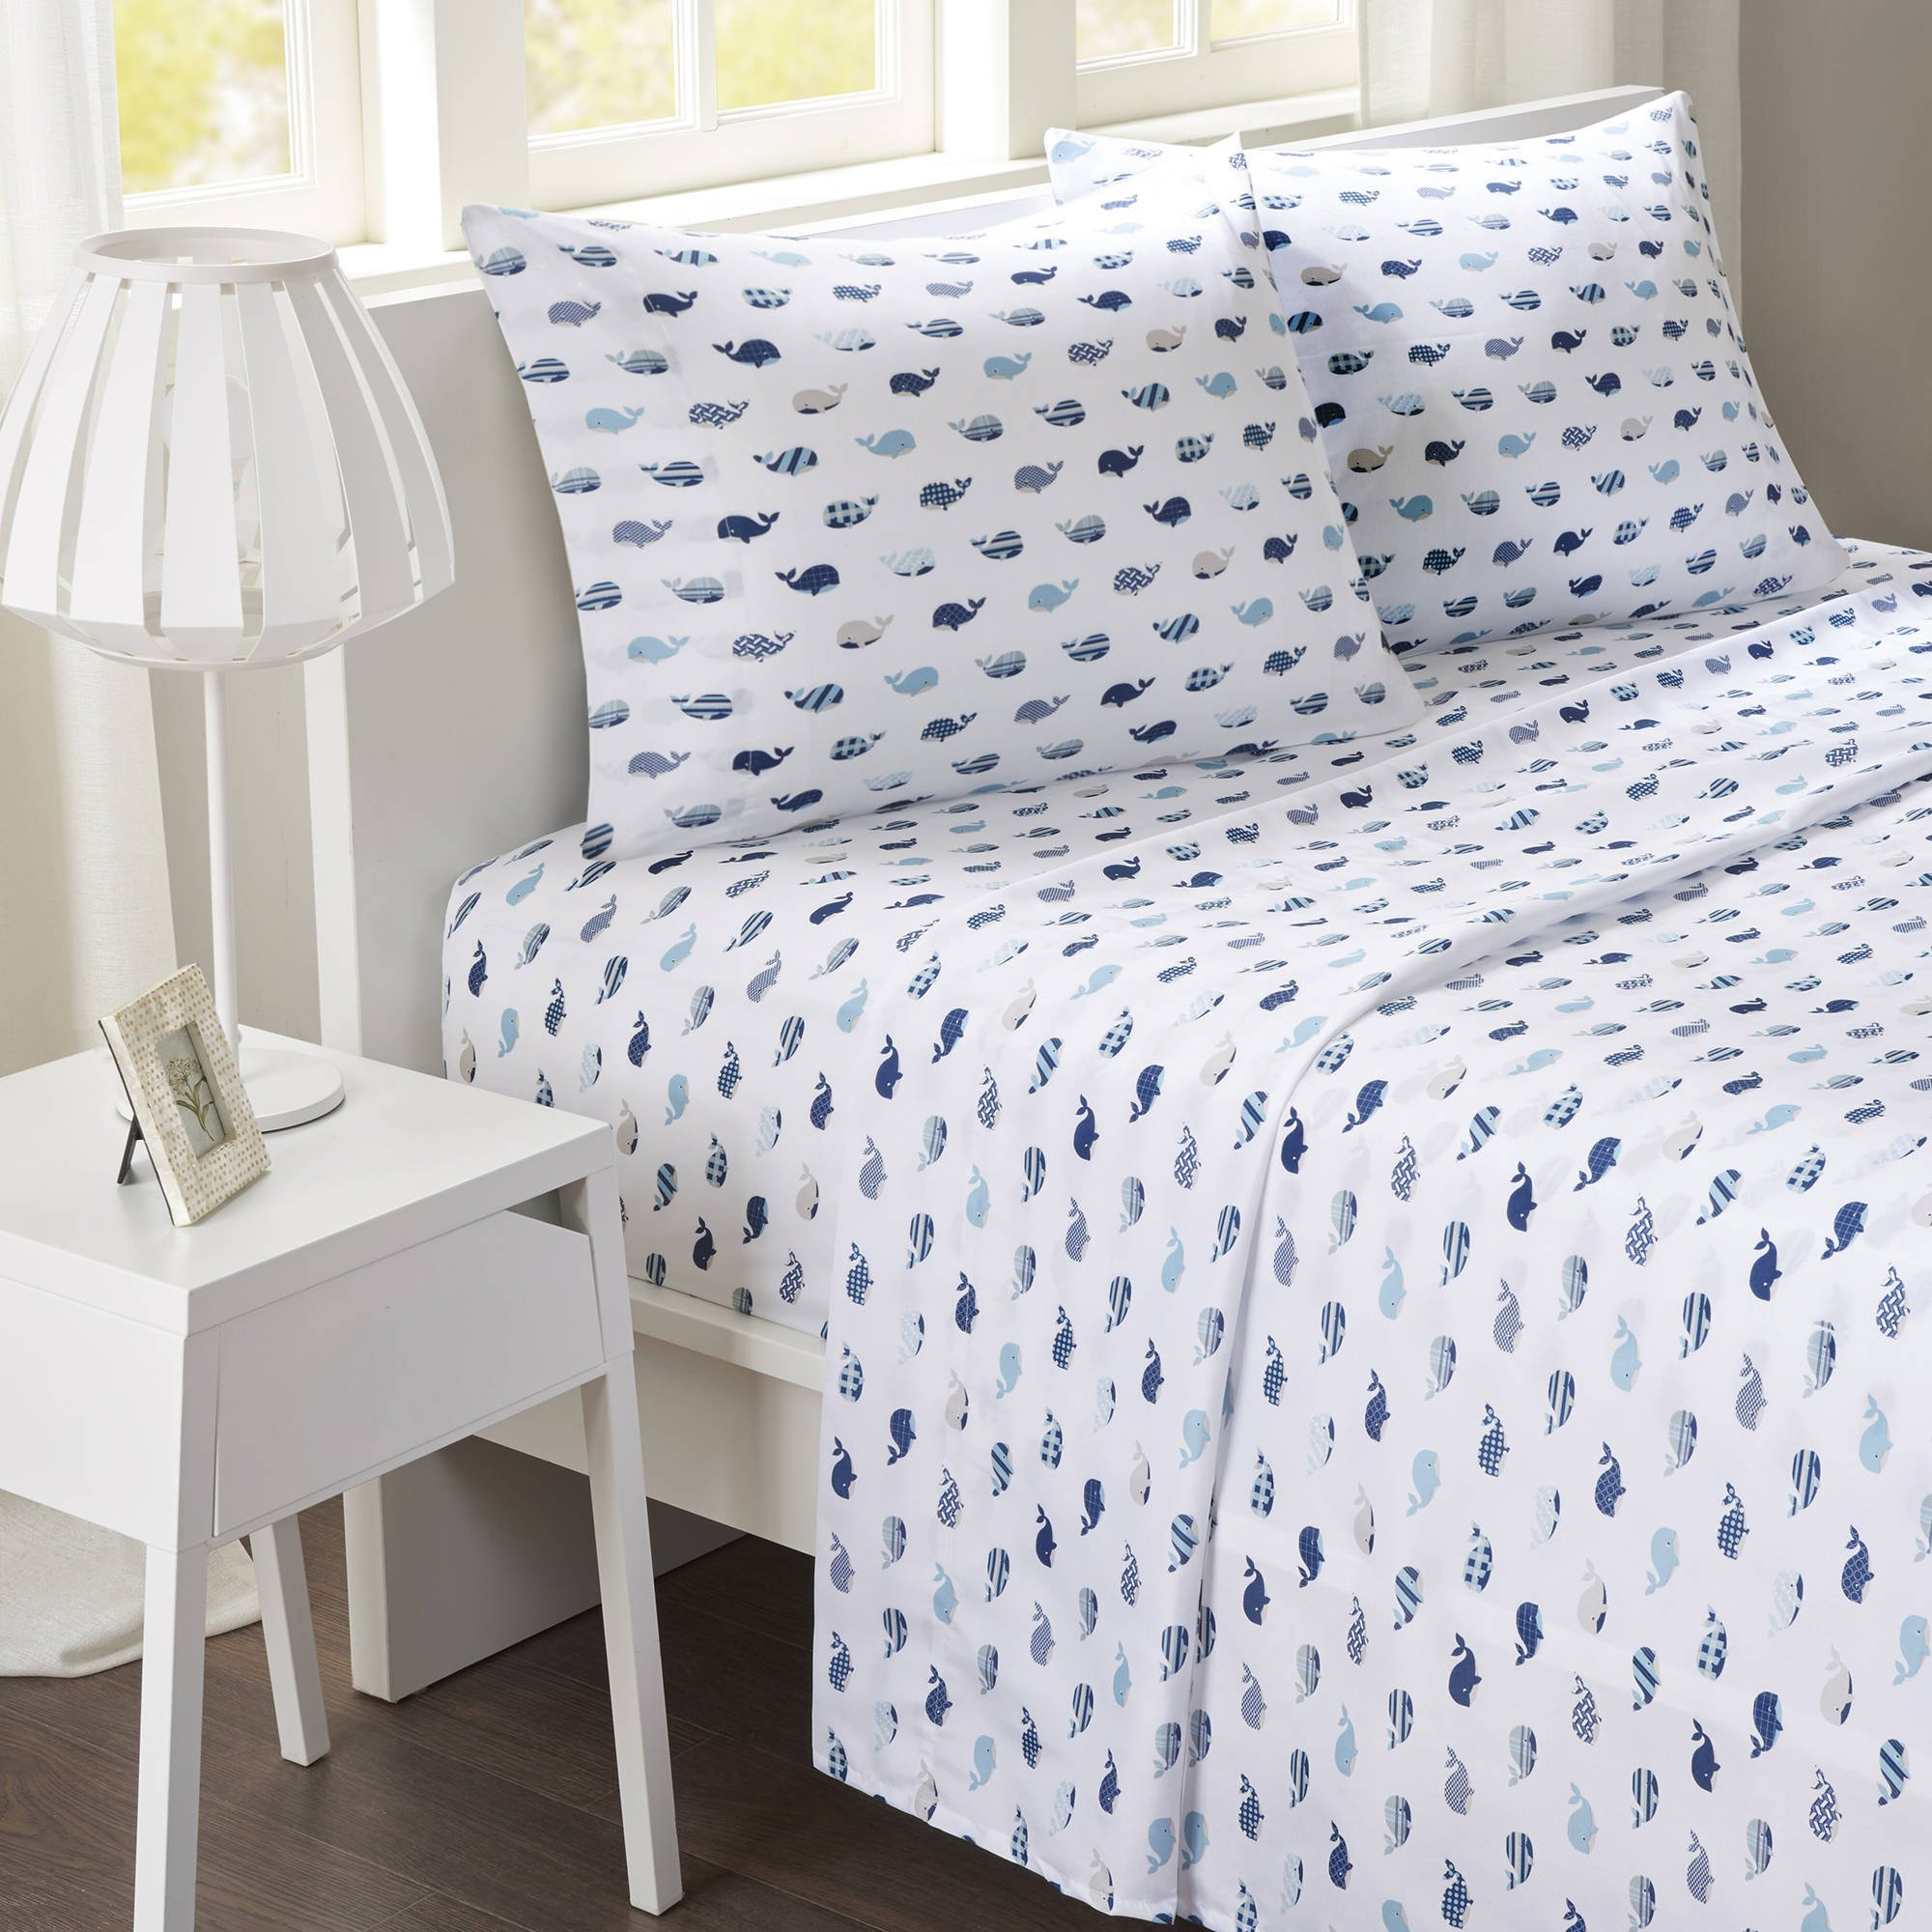 A&L 3 Piece Kids Blue Whale Sheet Set Twin, Light Blue Novelty Printed Bedding Sea Animal Print Bed Sheets White 85 Gsm Ultra Soft Delightful Elegant Luxurious Stylish Comfortable, Microfiber